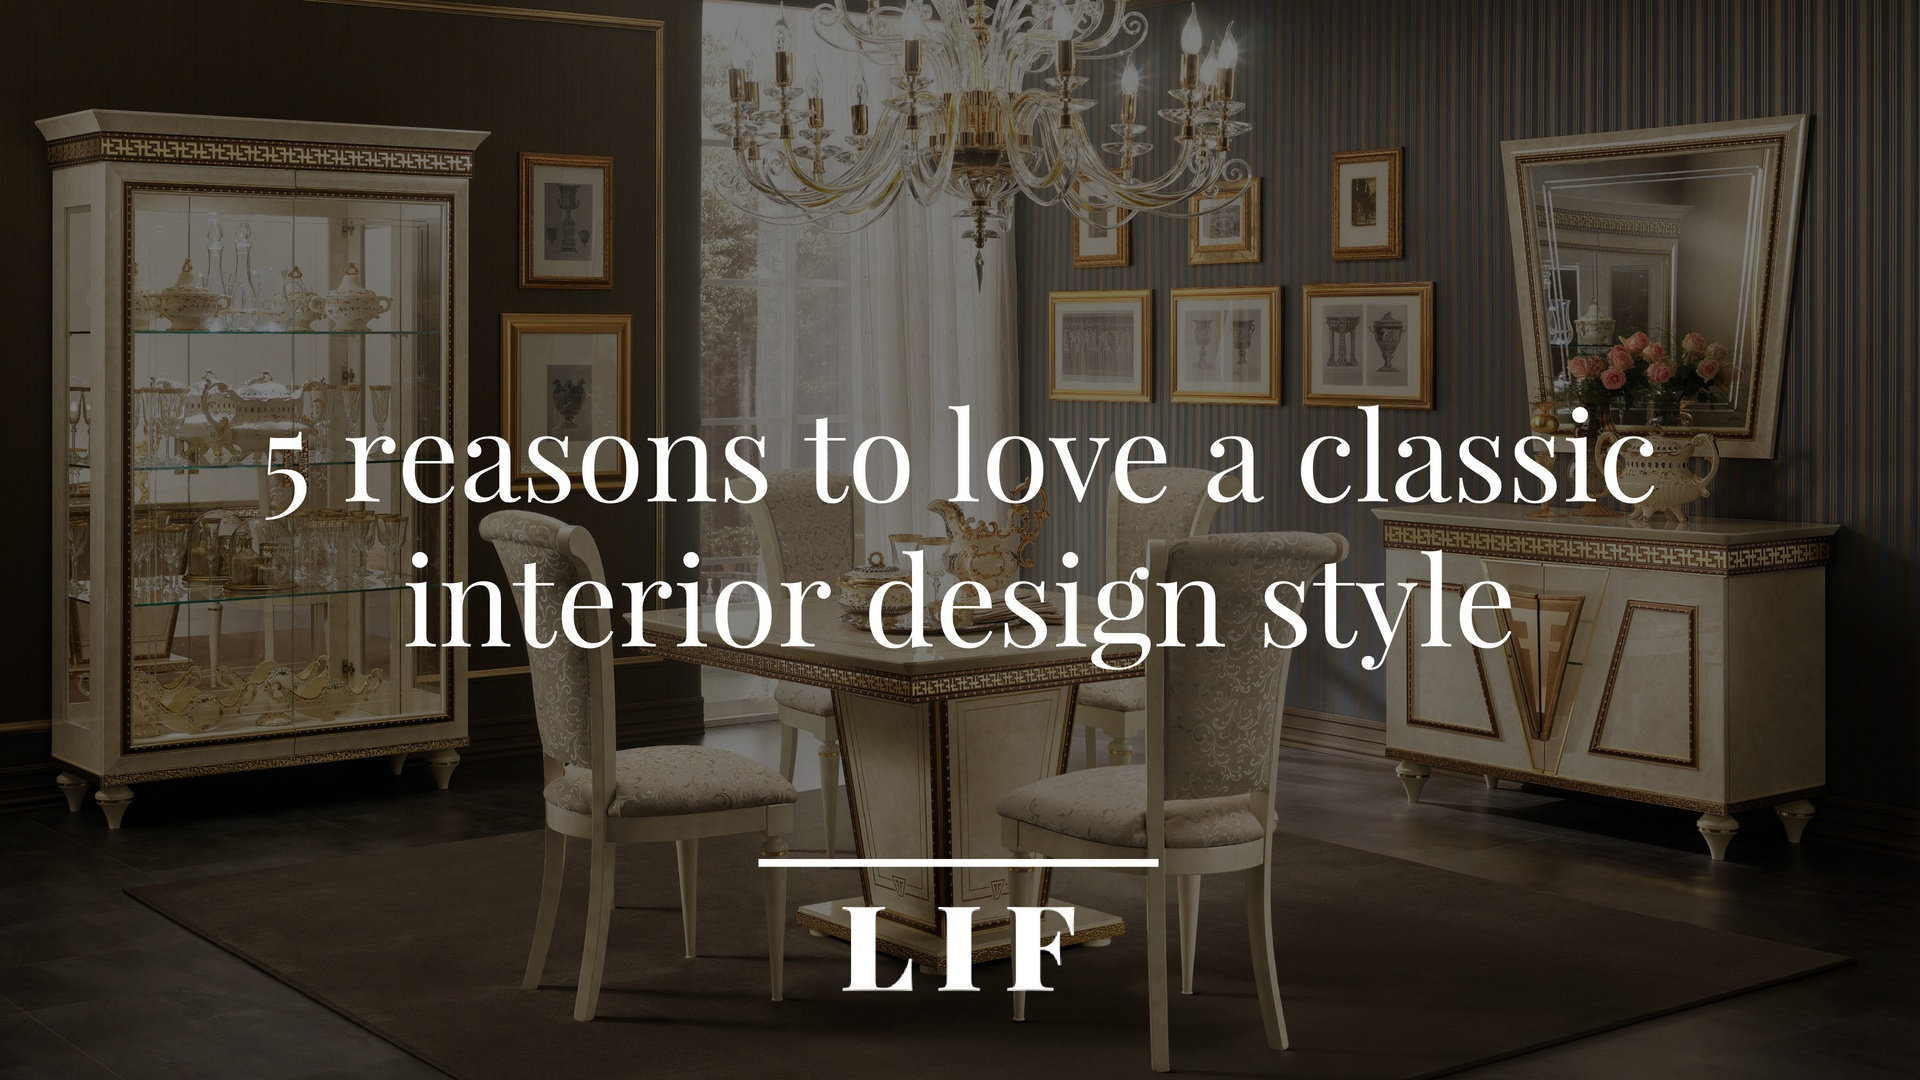 5 reasons to love a classic interior design style